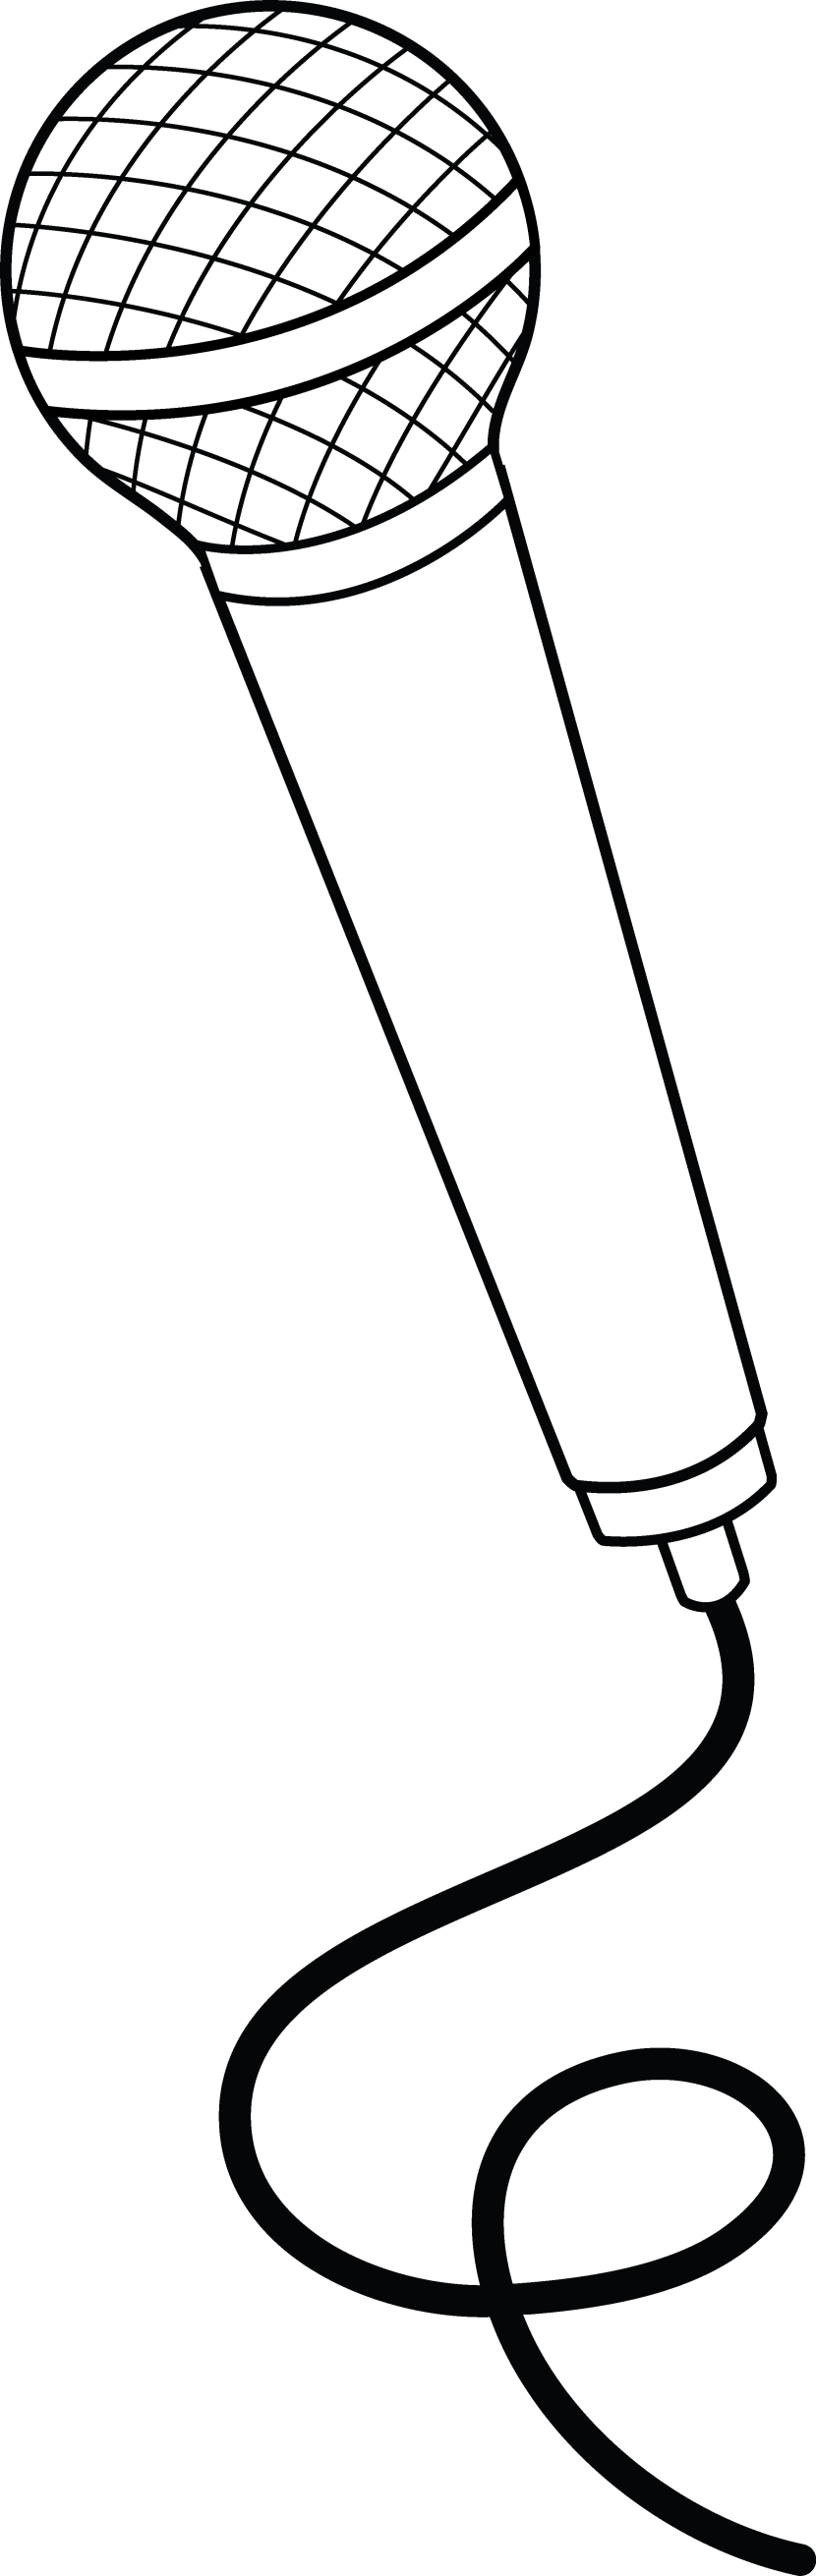 Microphone clipart drawing.  collection of transparent